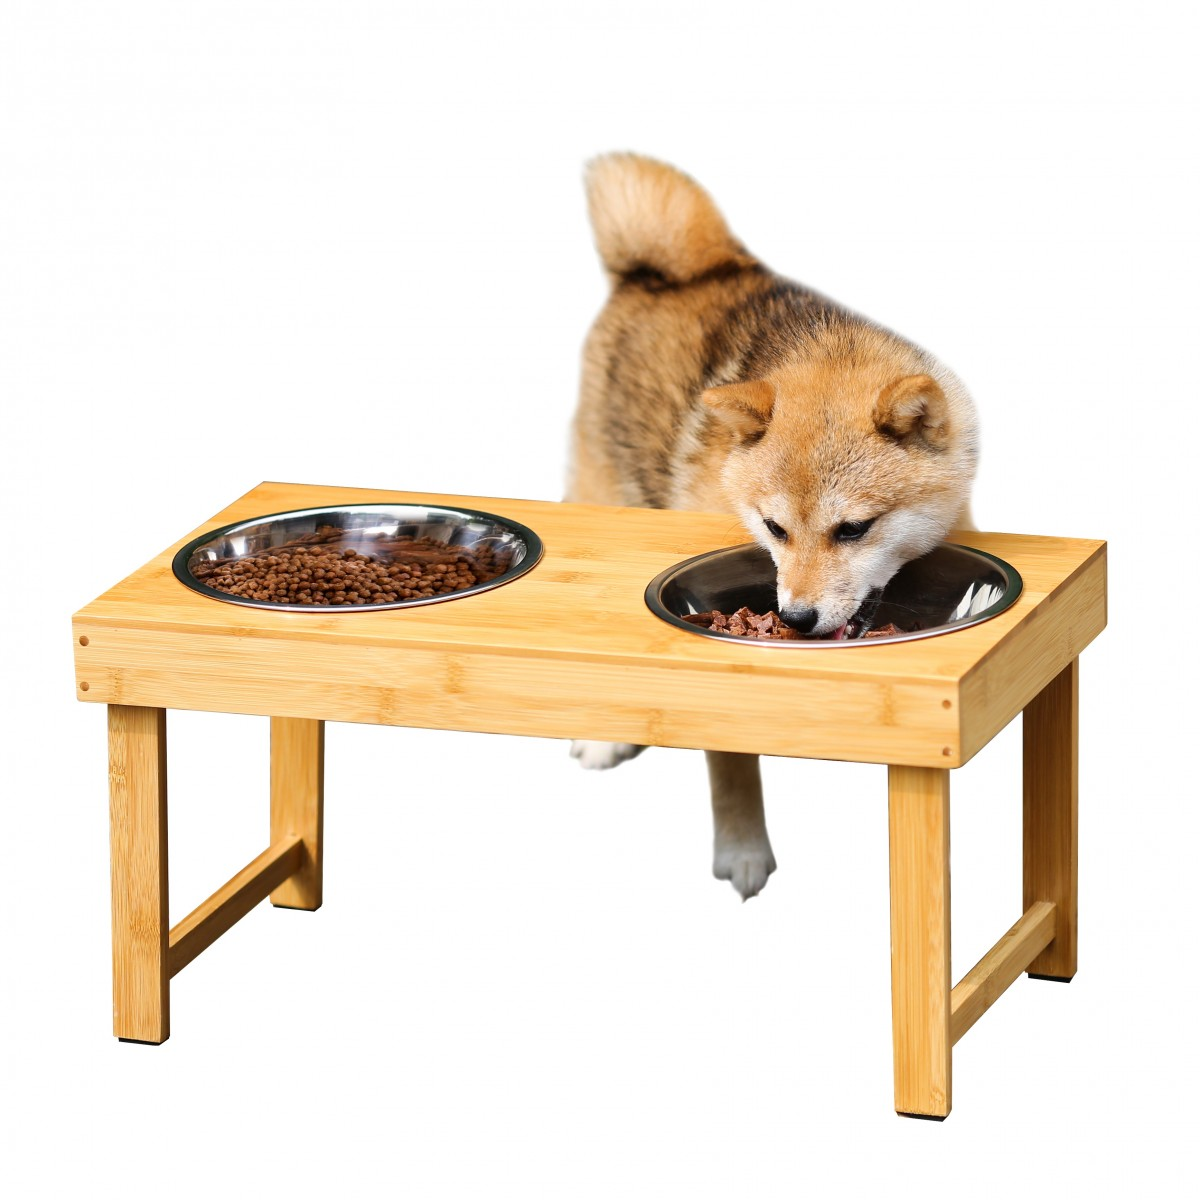 Bamboo Elevated Pet Feeder Dog Bowls Stand Stainless Steel Bowls